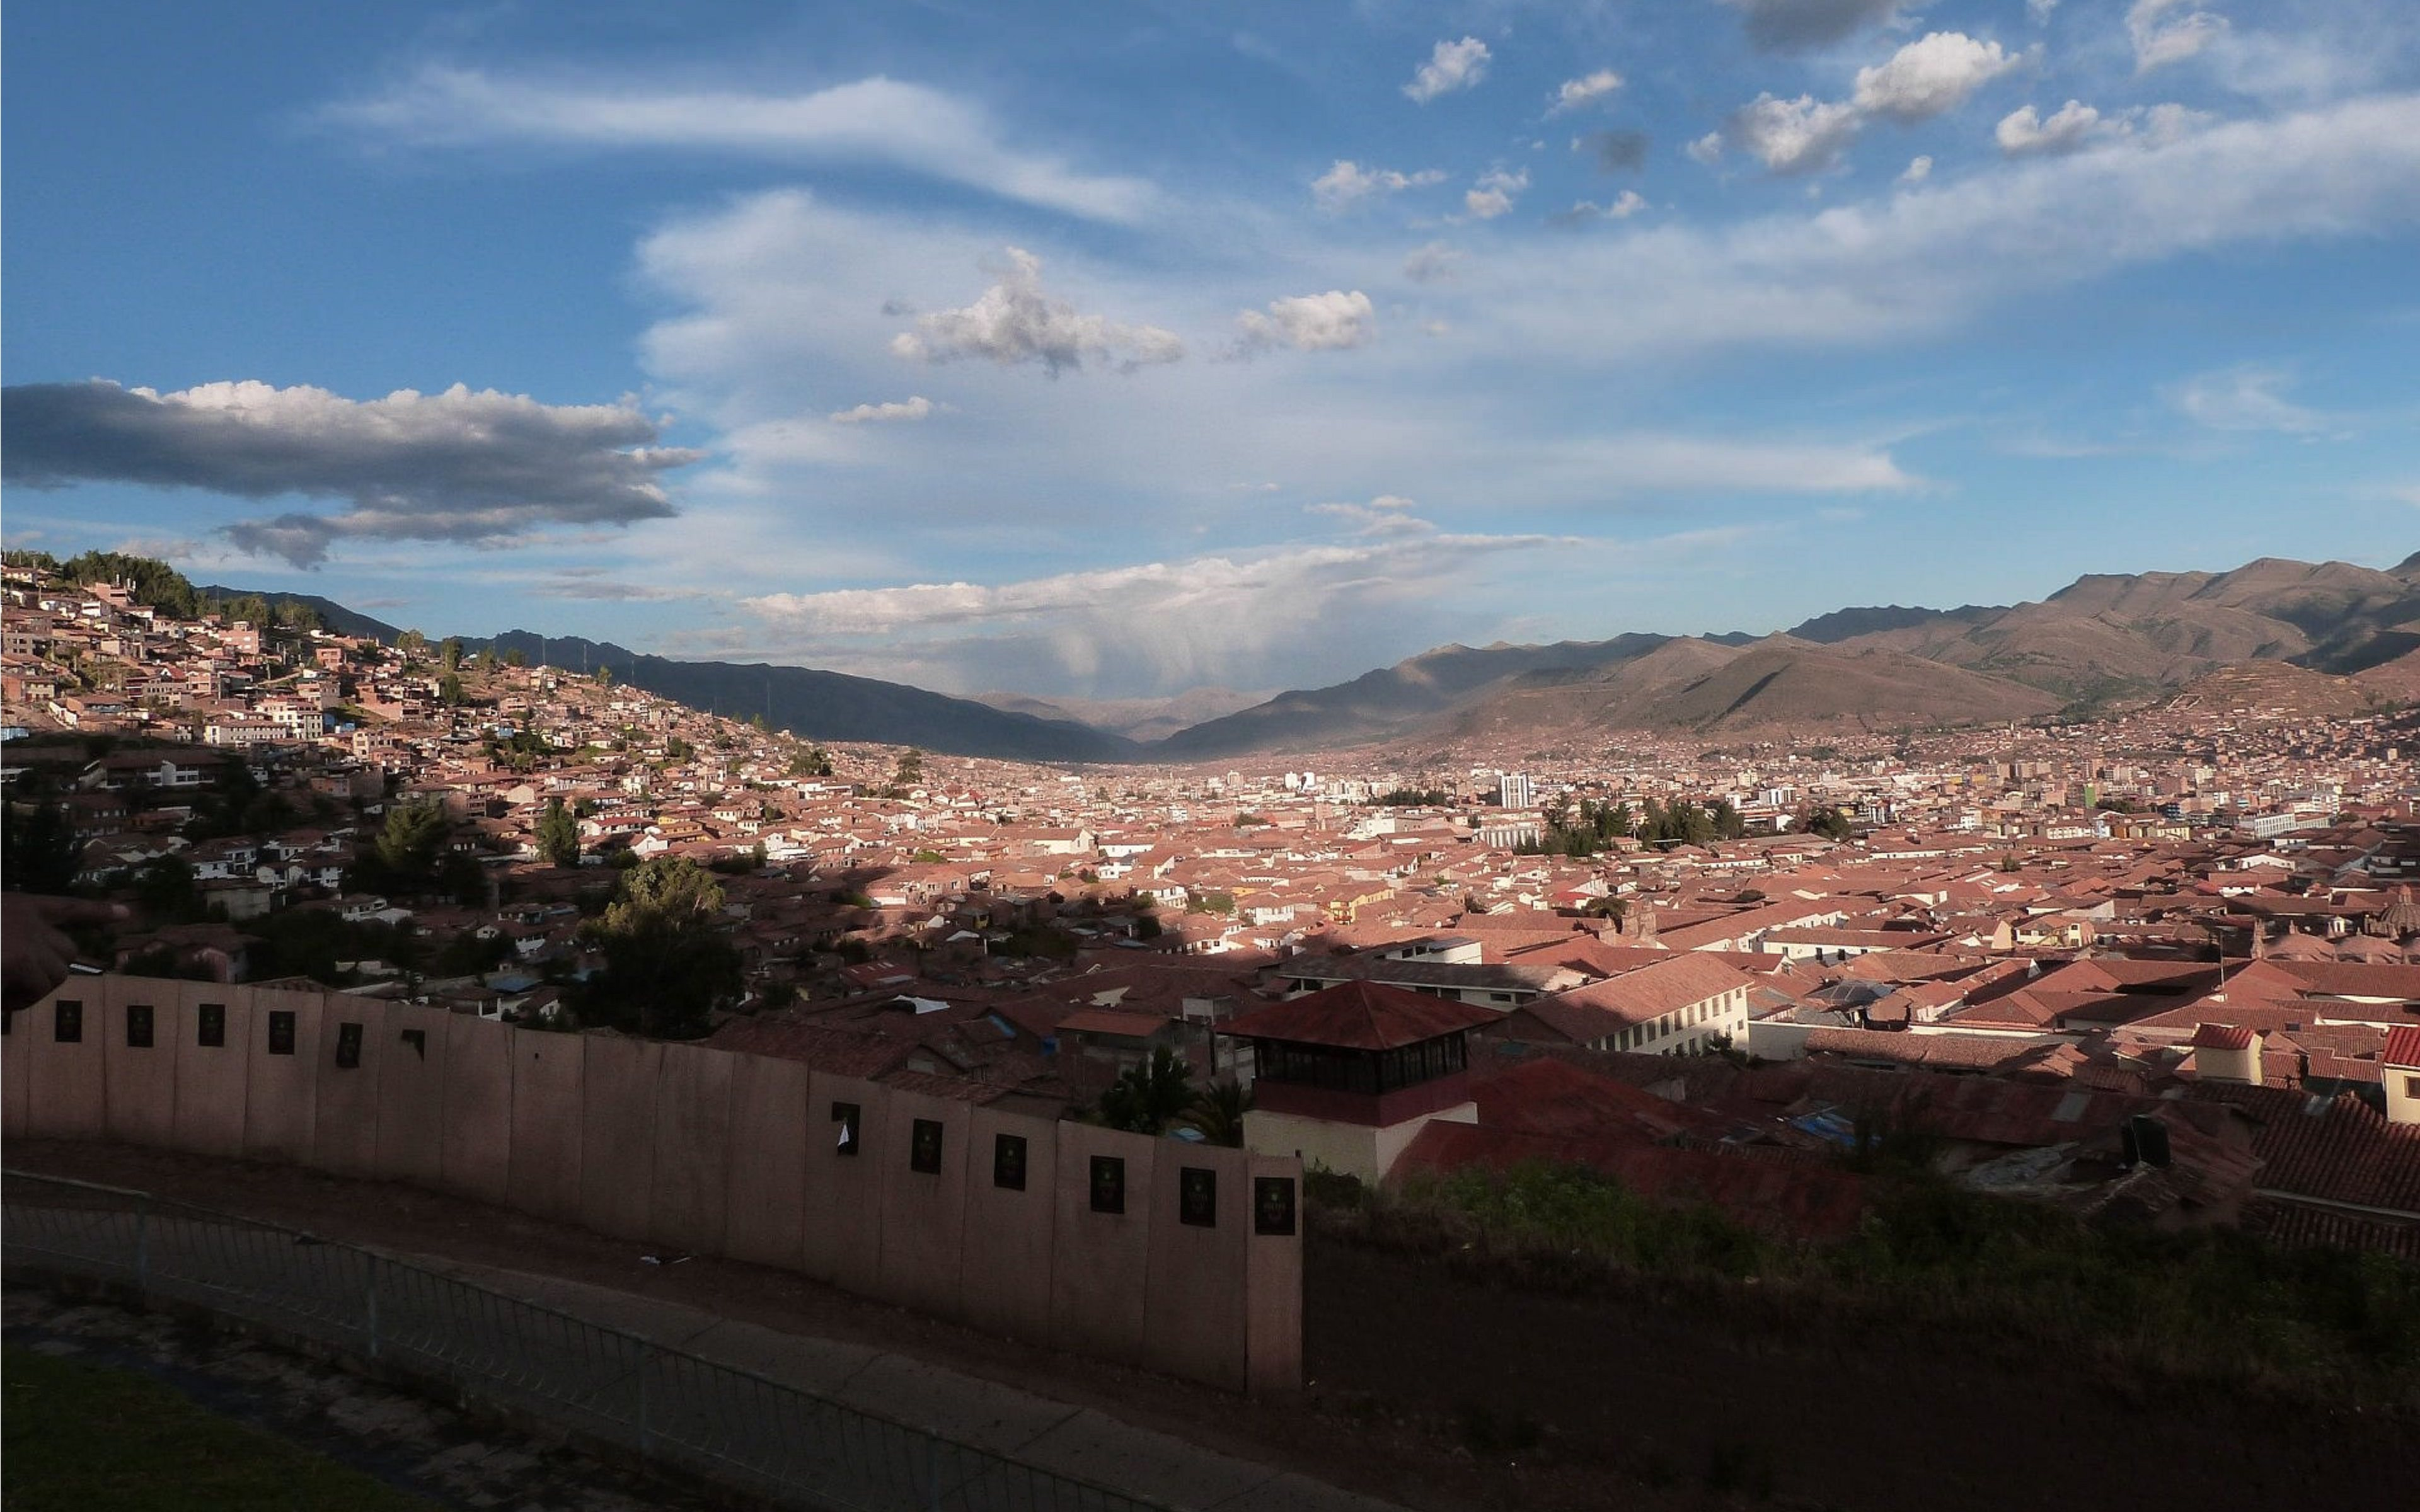 FEATURED CUSCO - Cusco & Valle Sagrado